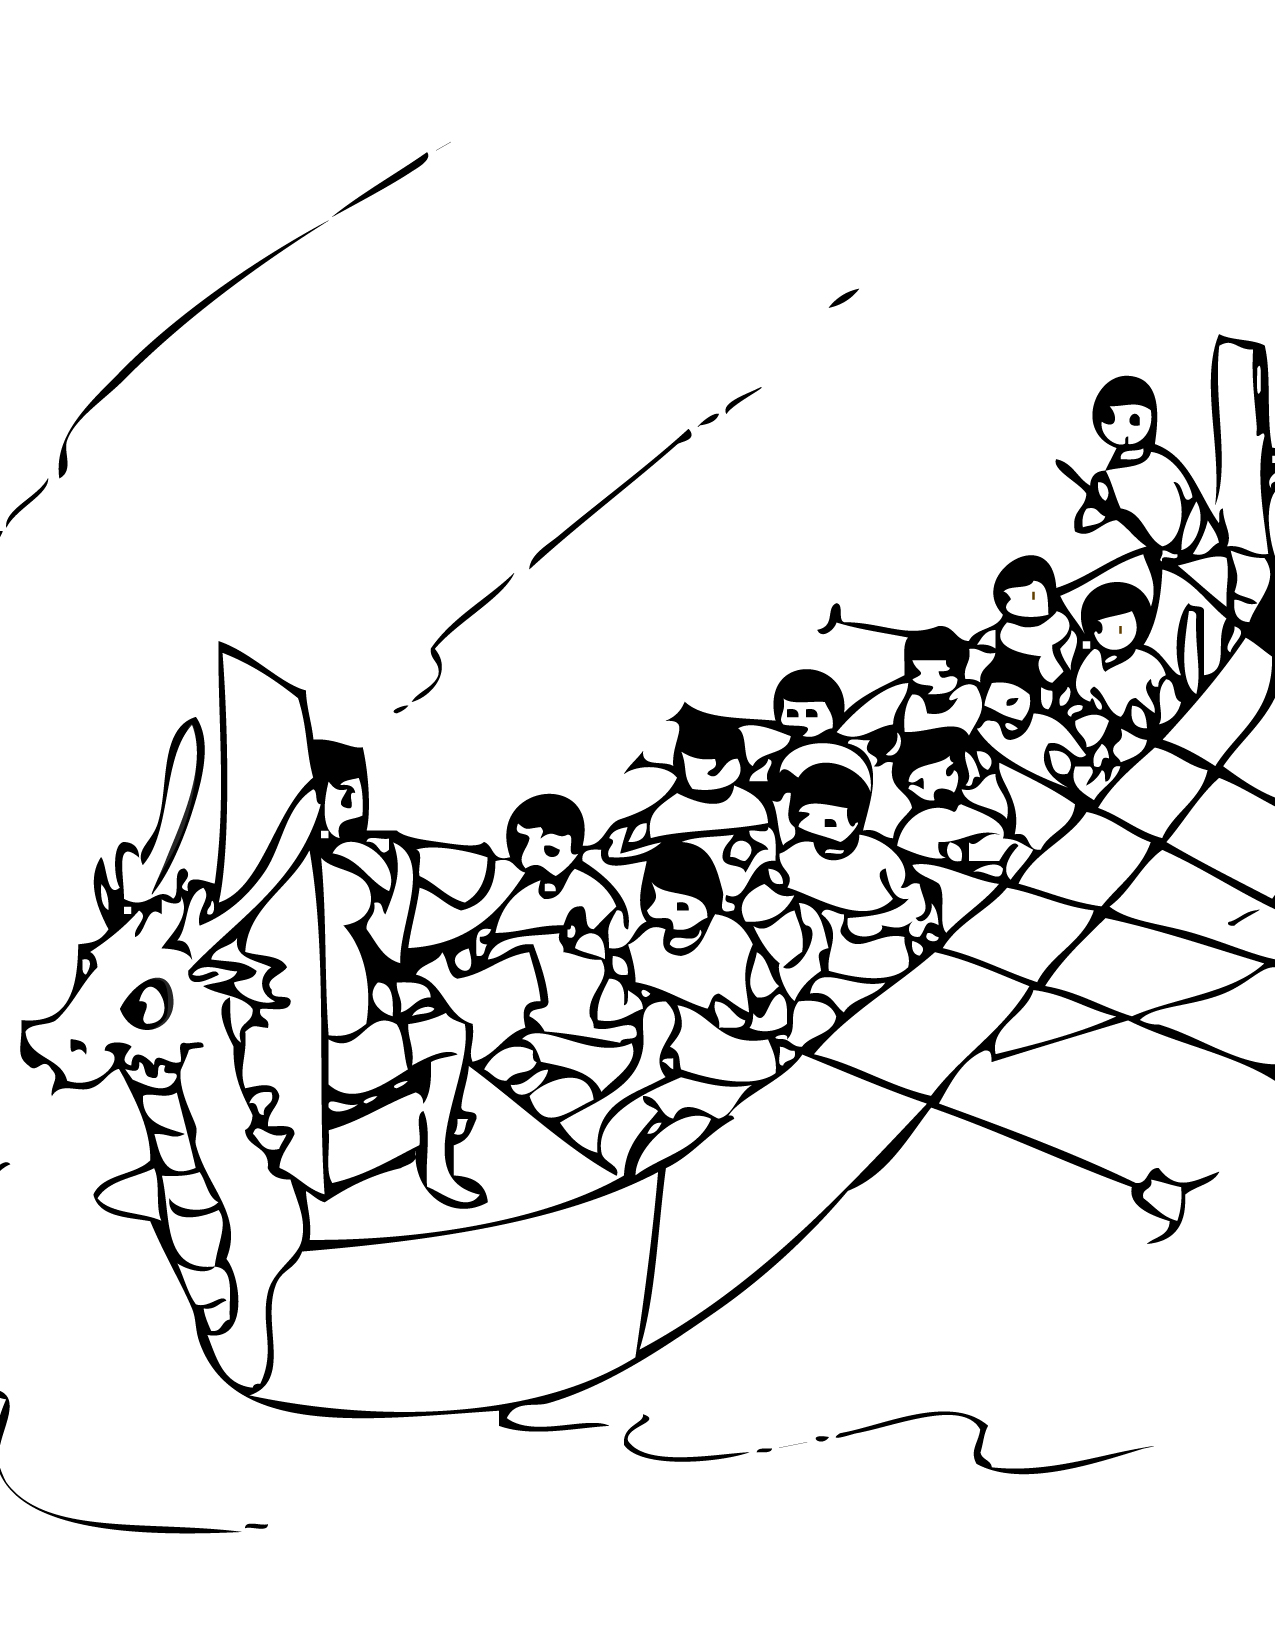 Dragon Boat Coloring Pages At Getcolorings